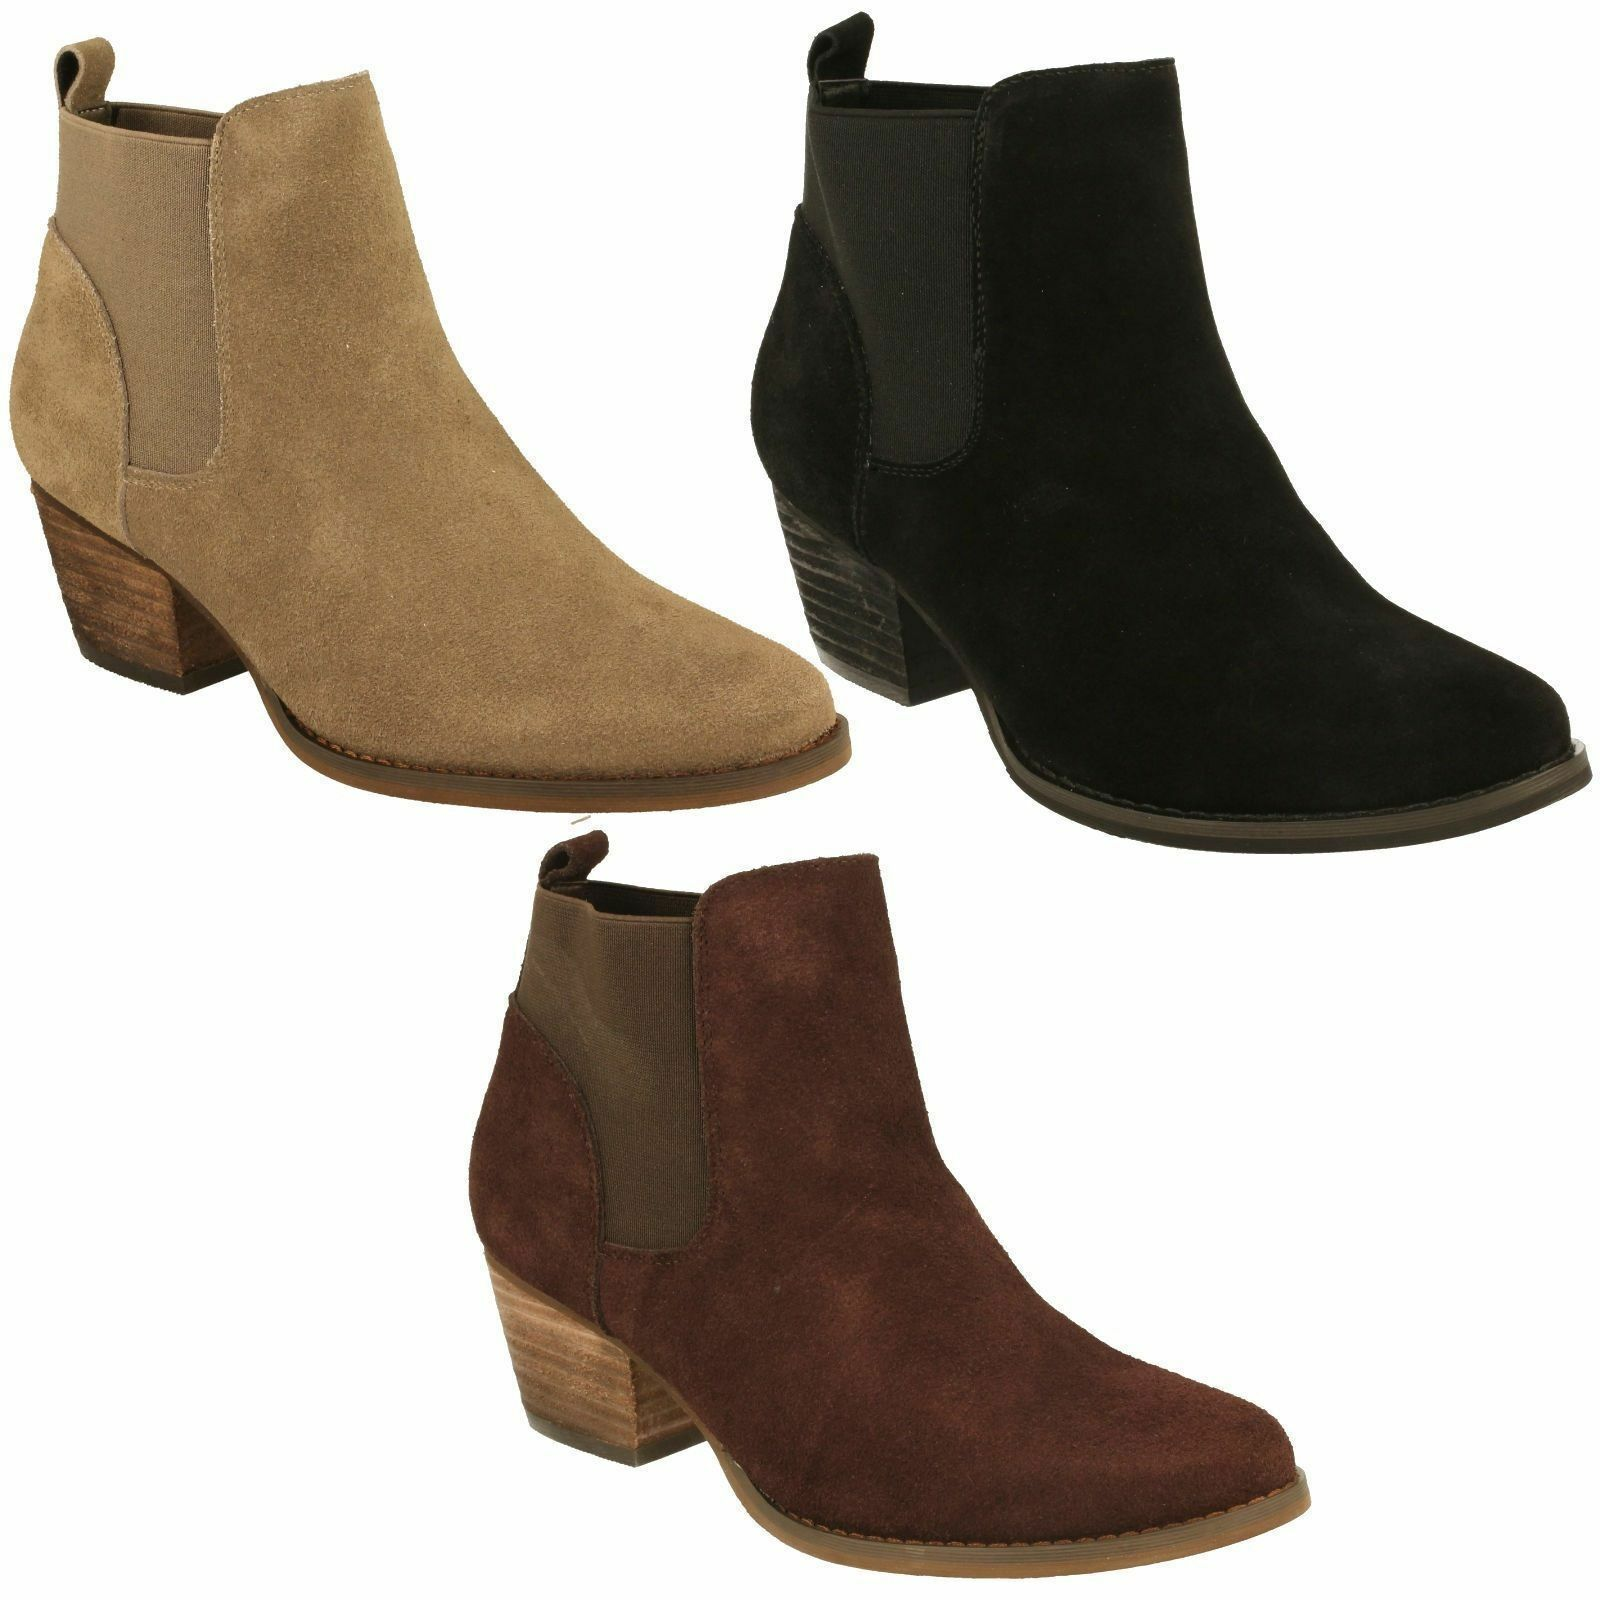 LADIES DOWN TO TO DOWN EARTH BLOCK HEEL LEATHER BLACK BROWN TAUPE ANKLE Stiefel F50678 0c5ef2